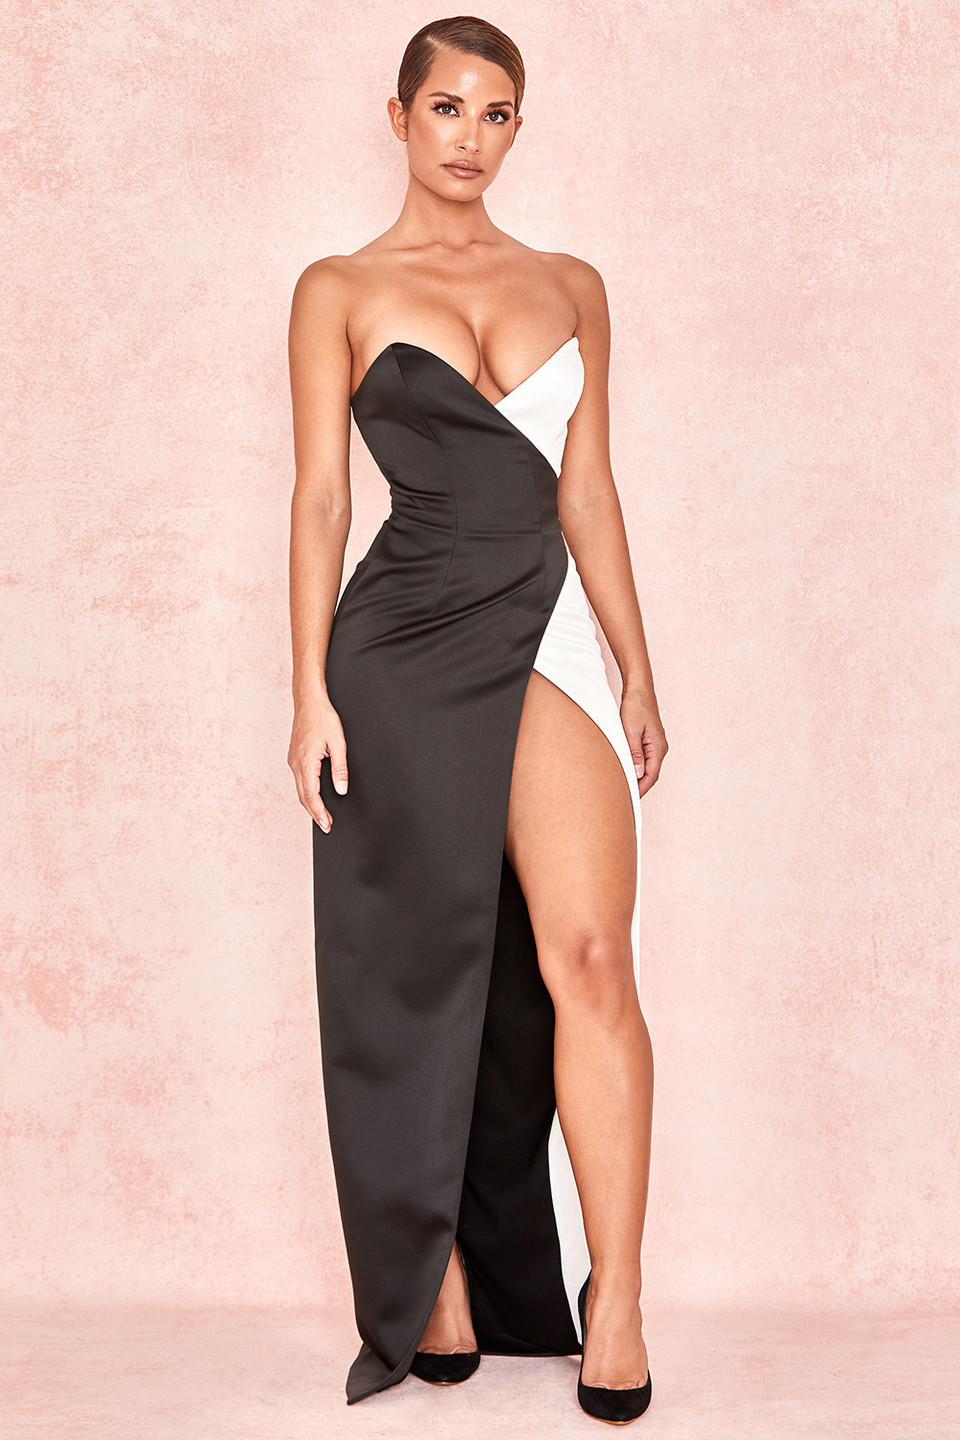 Clio Black + White Satin Strapless Maxi Gown